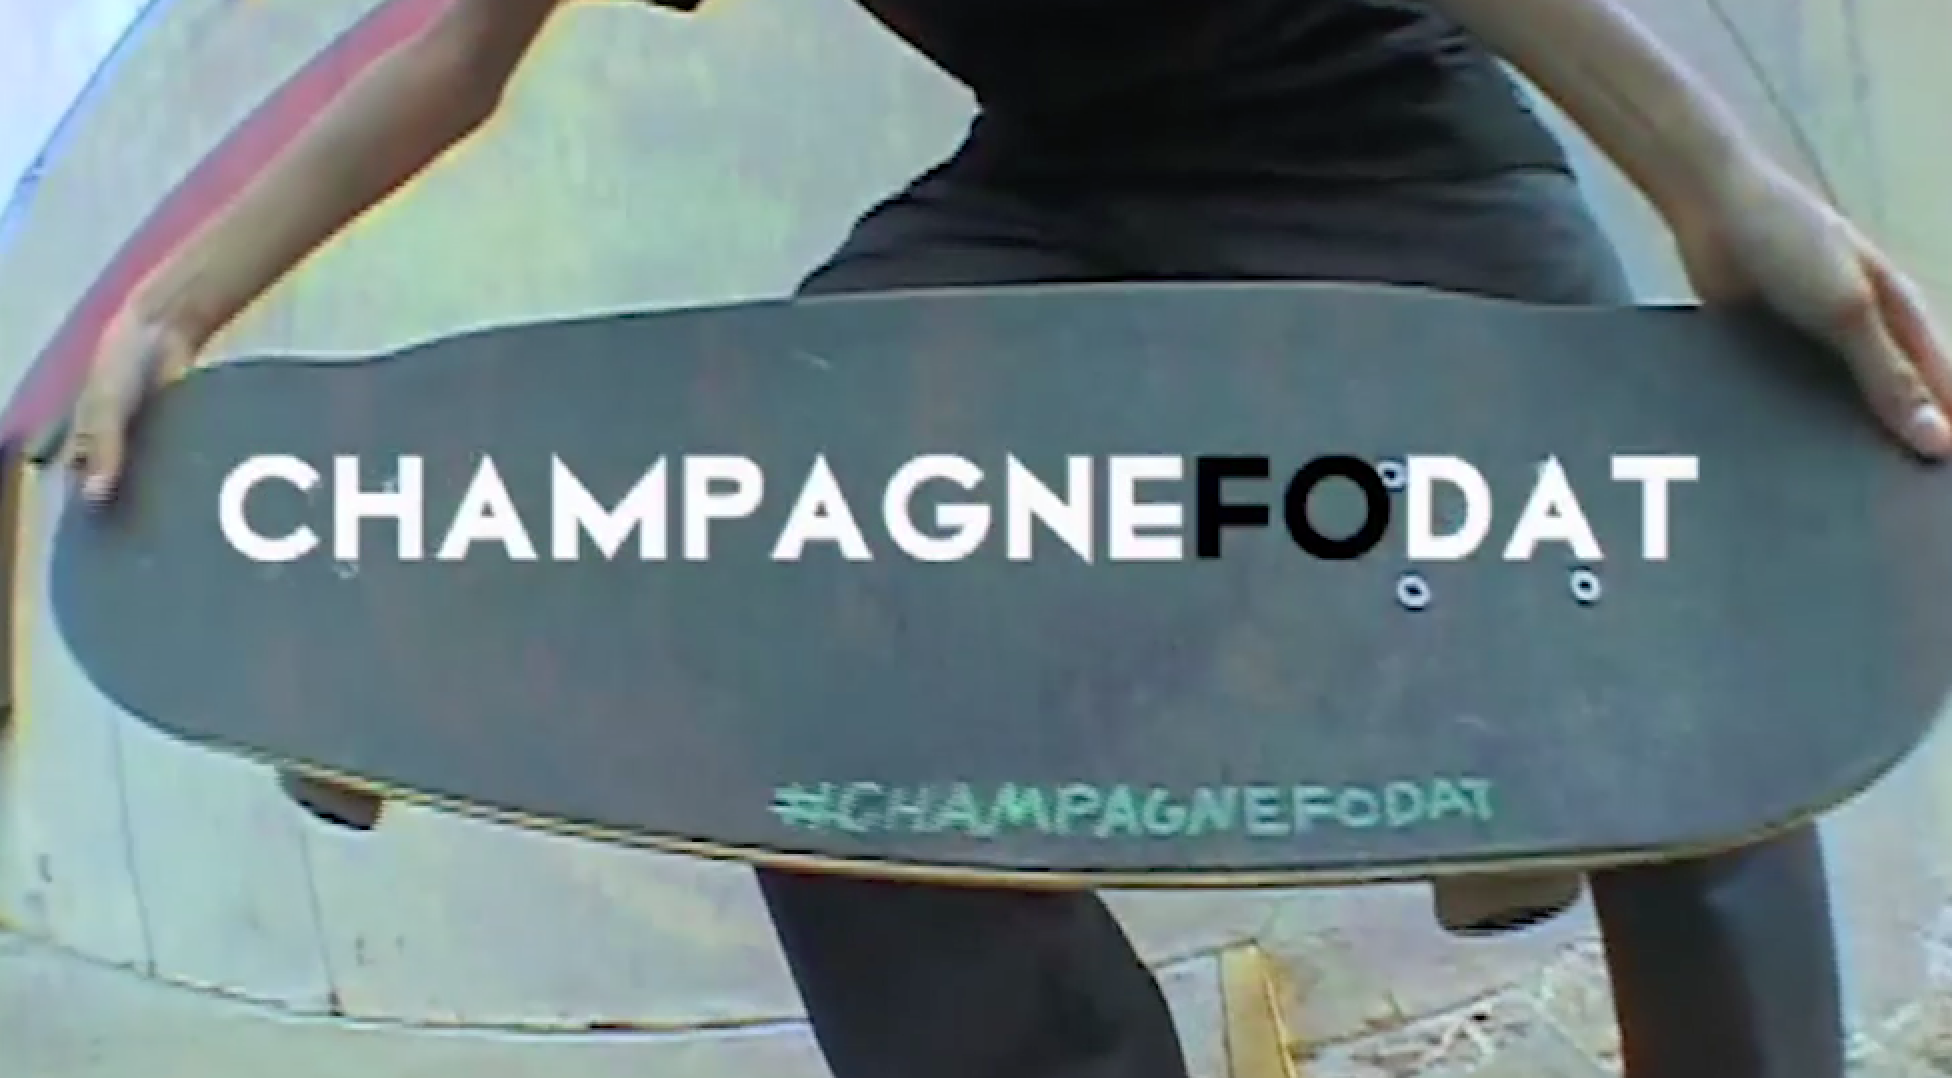 ChampagneFoDat, Ave A New Skateshop Video